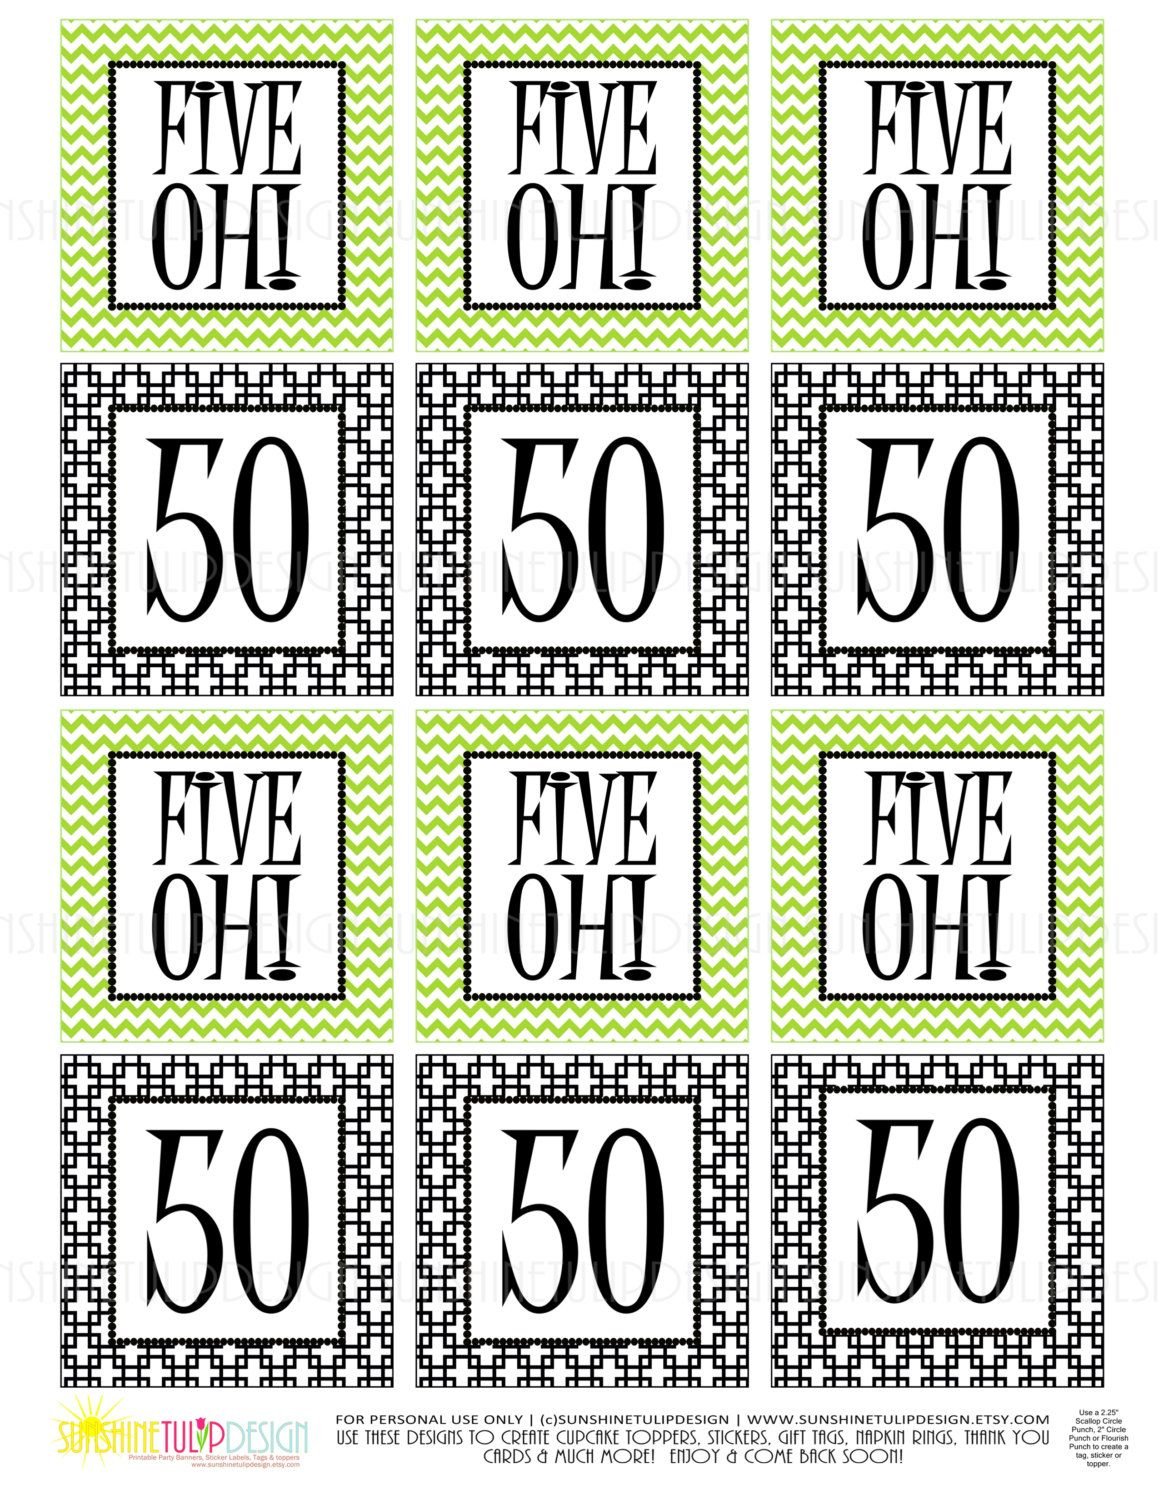 50th Birthday Five Oh Printable Gift Tags Cupcake Toppers Sticker Labels By SUNSHINETULIPDESIGN Sunshinetulipdesign On Etsy